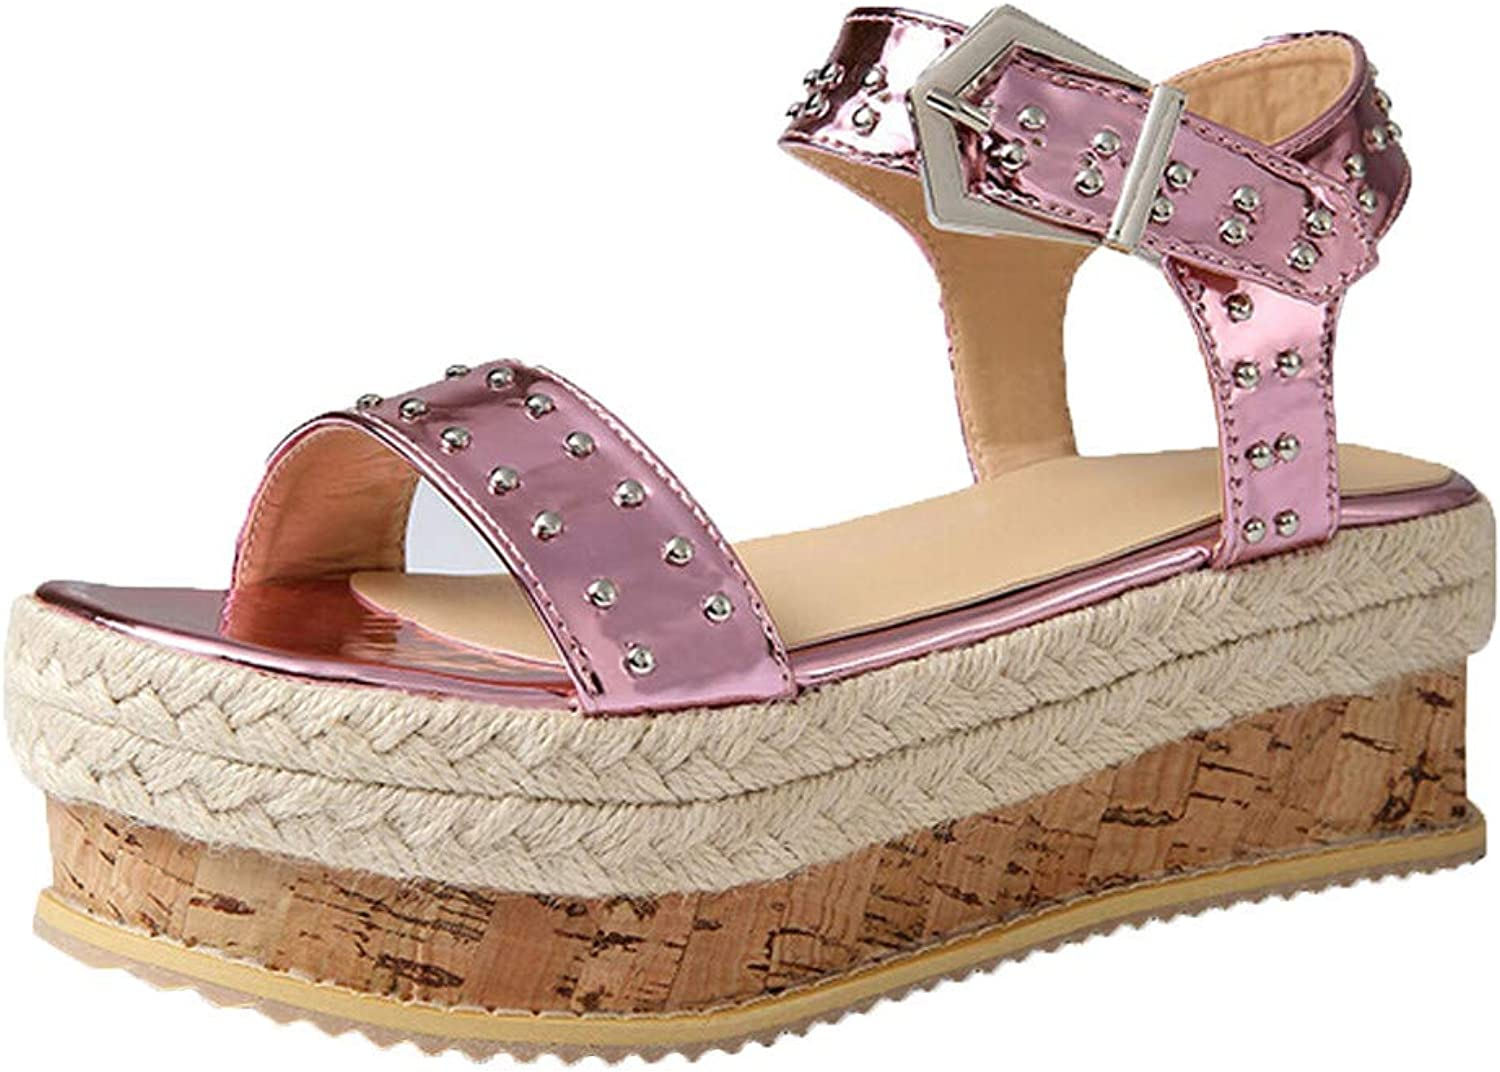 Thick-Soled Sandals,Youngh Summer Women's Thick-Soled Sandals Belt Buckle Flat Sandals Rivet Beach shoes